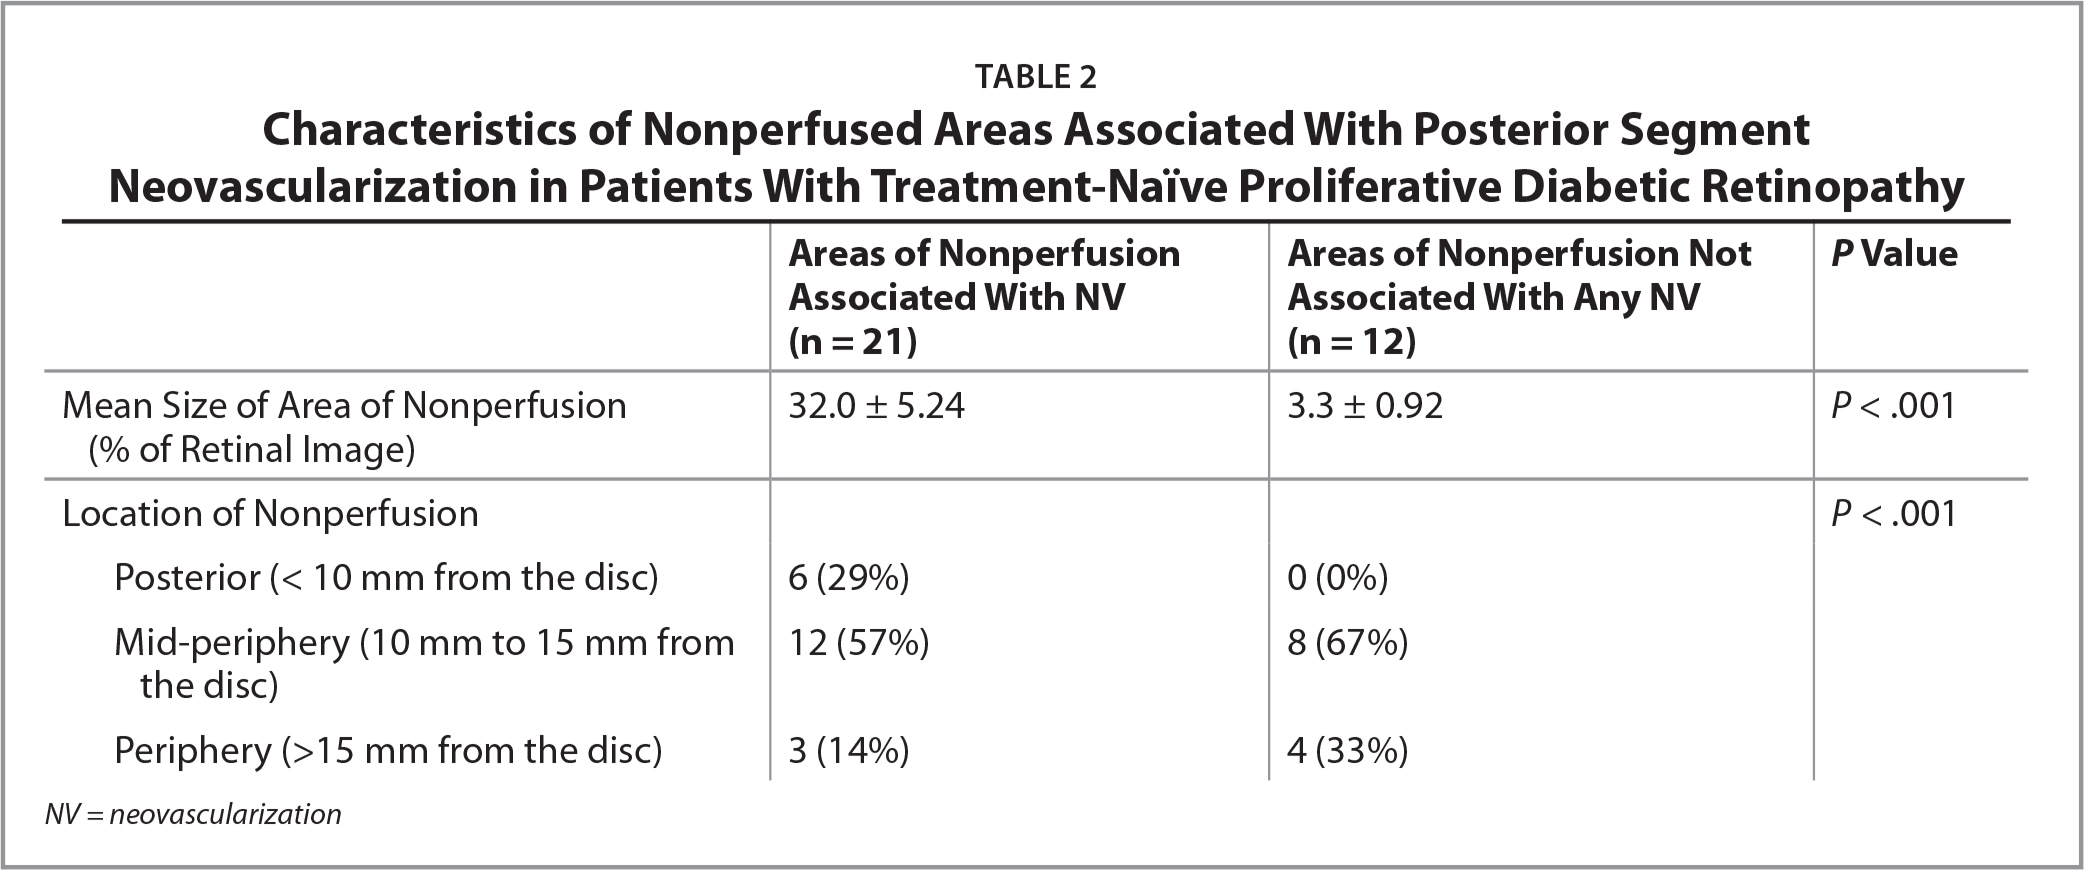 Characteristics of Nonperfused Areas Associated With Posterior Segment Neovascularization in Patients With Treatment-Naïve Proliferative Diabetic Retinopathy